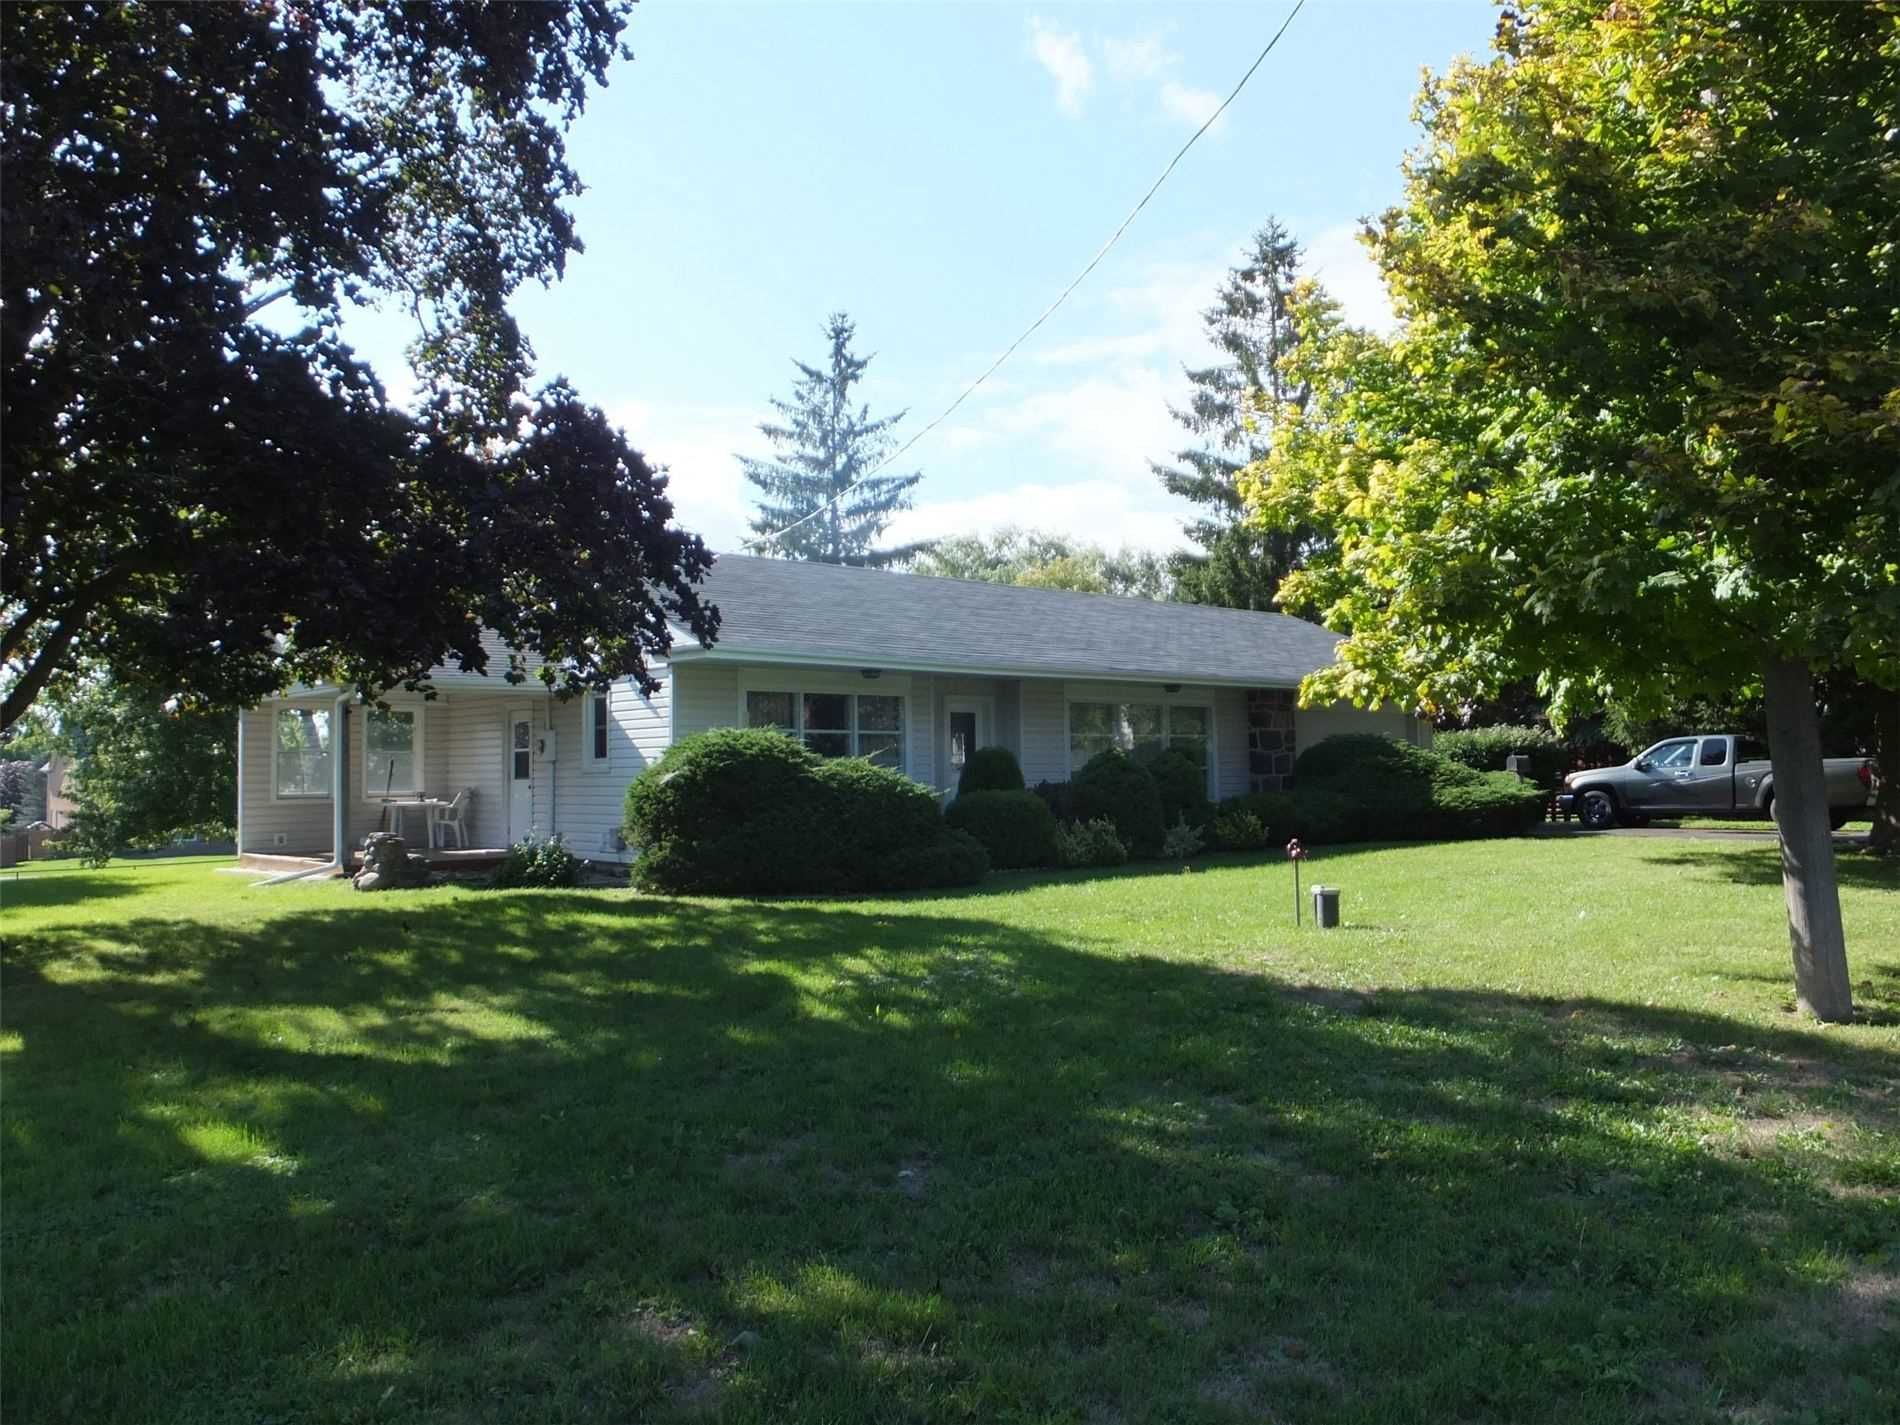 4956 Old Brock Rd, Pickering